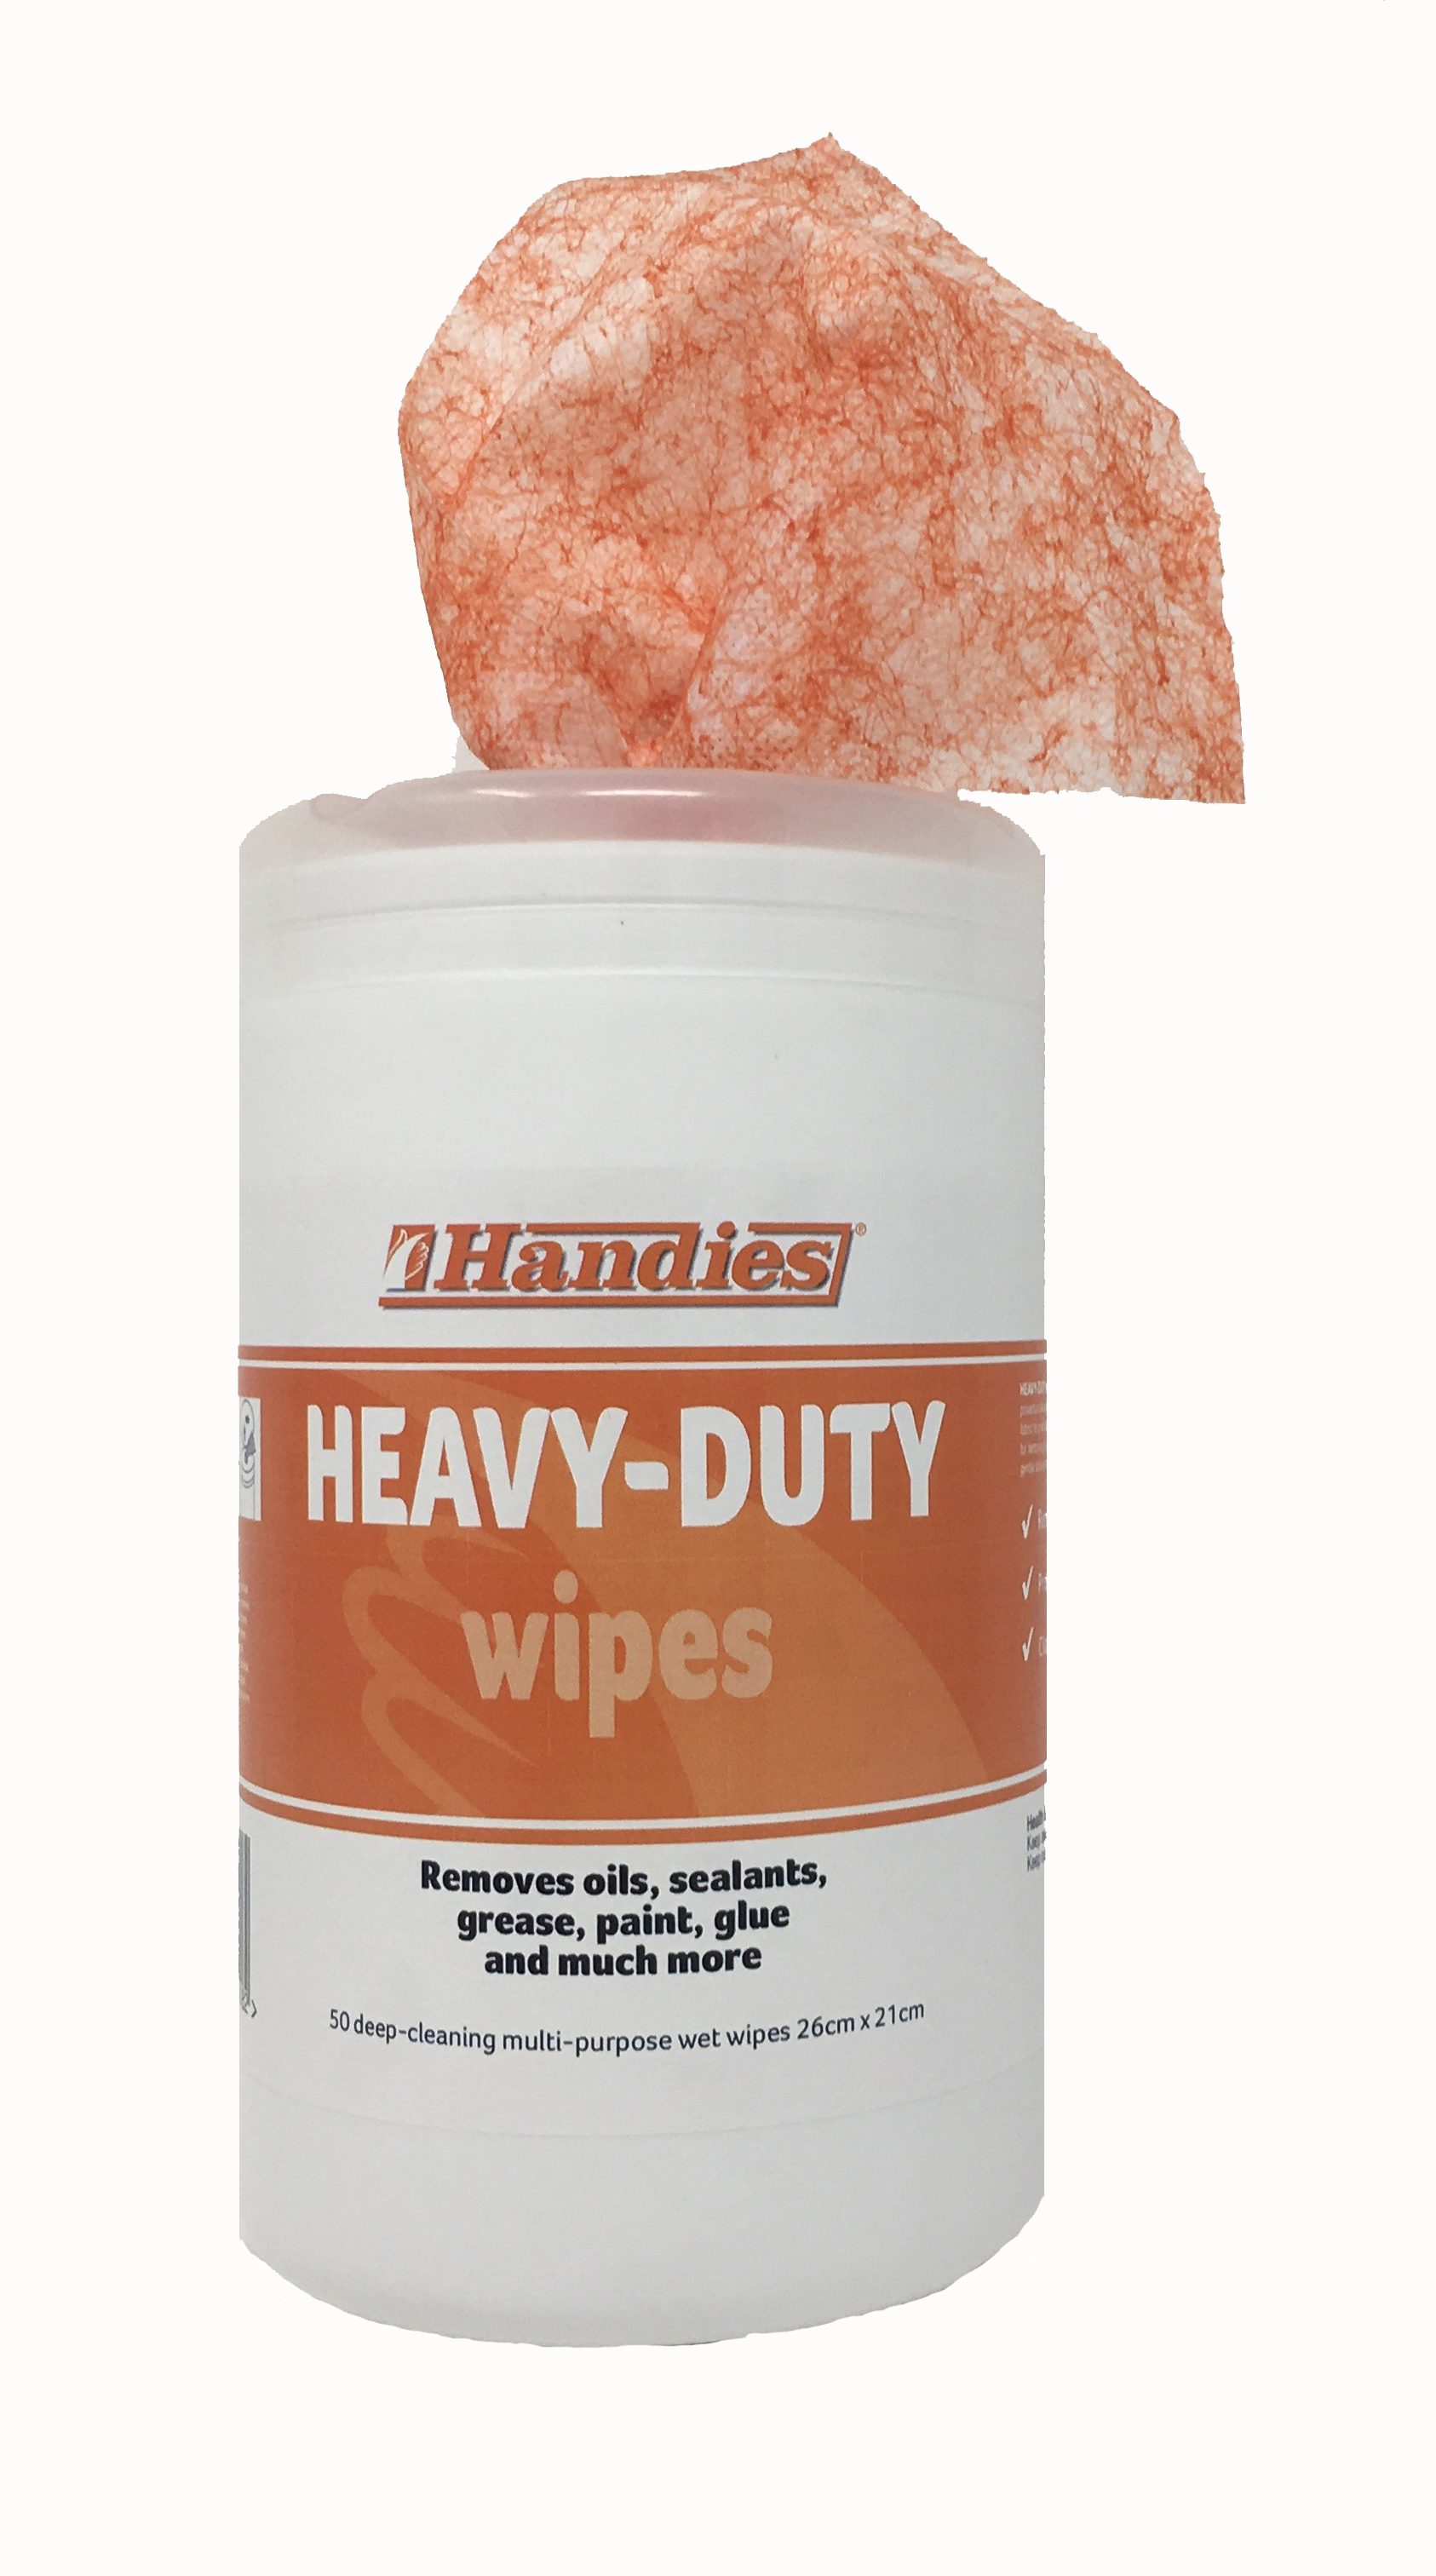 Image of Handies Heavy Duty Wipes